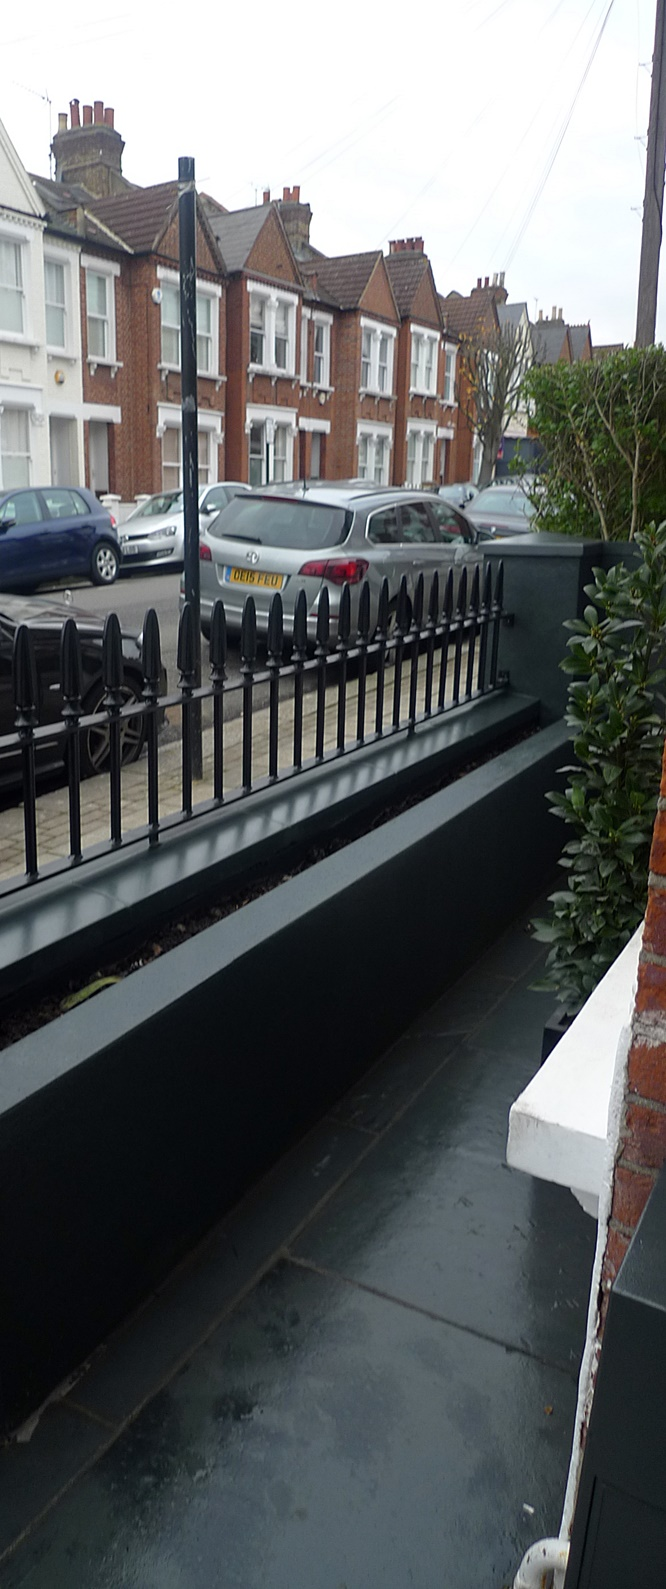 Black Garden Wall Path Tile Rail Metal Gate Bespoke Imperial Modern Design  Balham London Wandsworth Chelsea Fulham